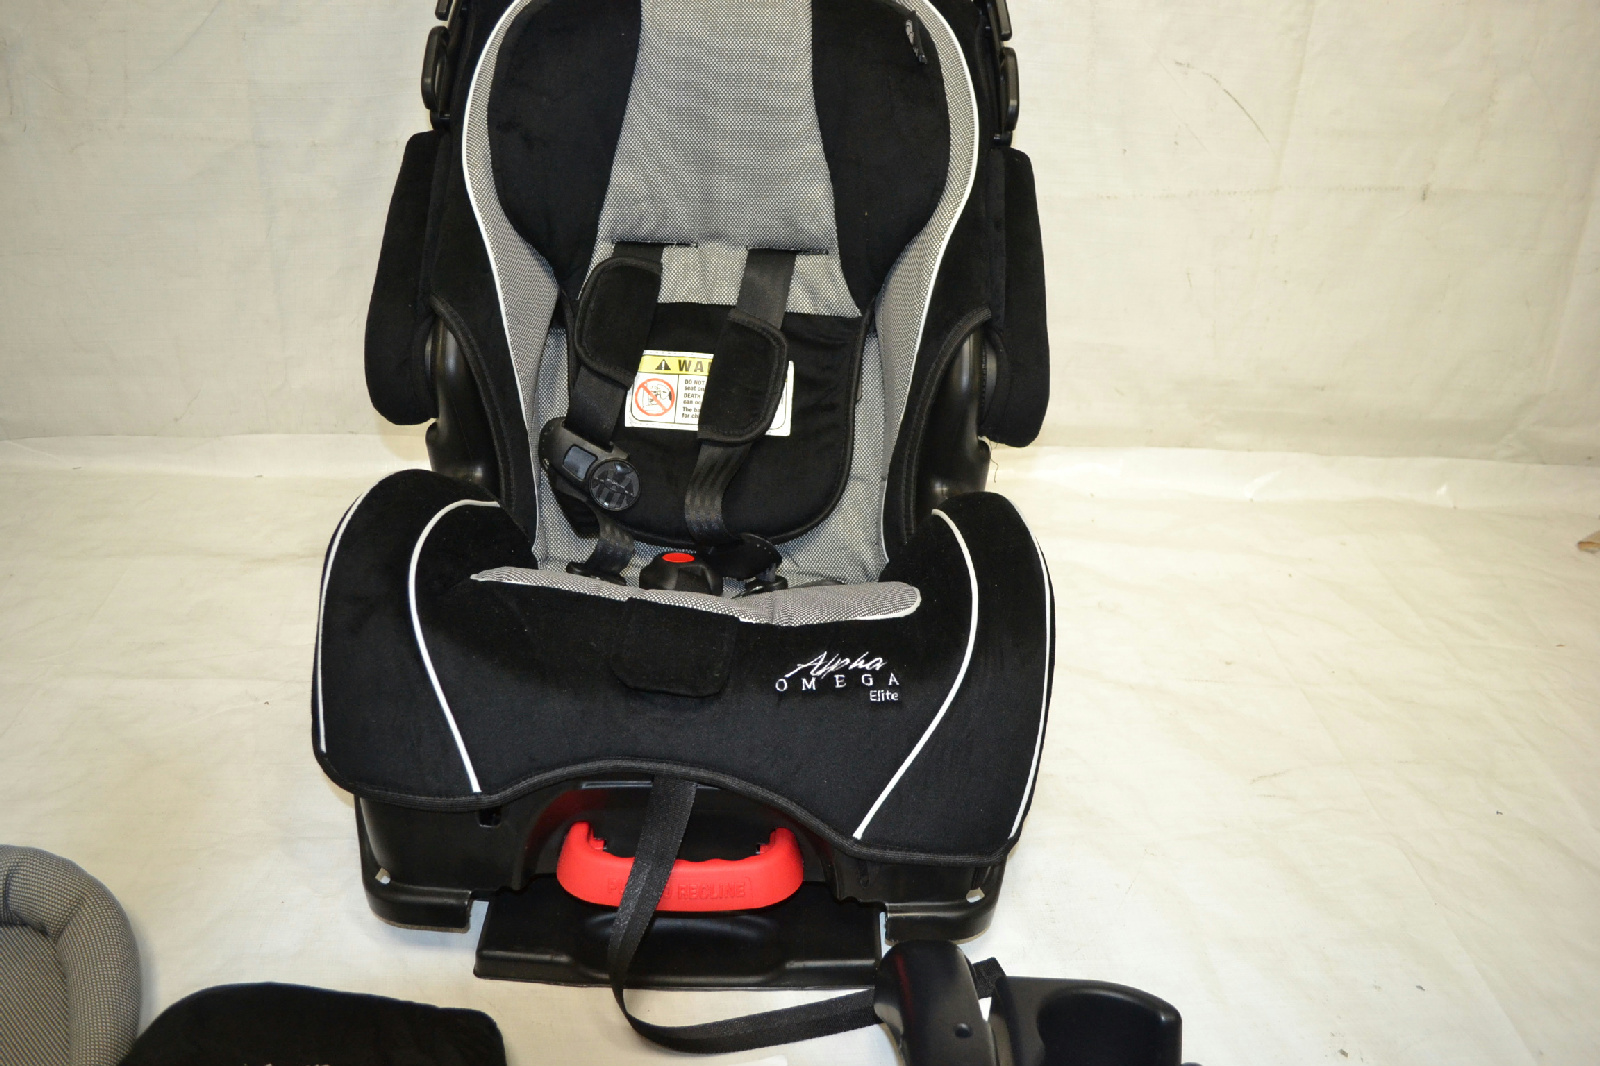 Convertible Car Seat: Graco My Ride 65 LX Convertible Car Seat, Coda